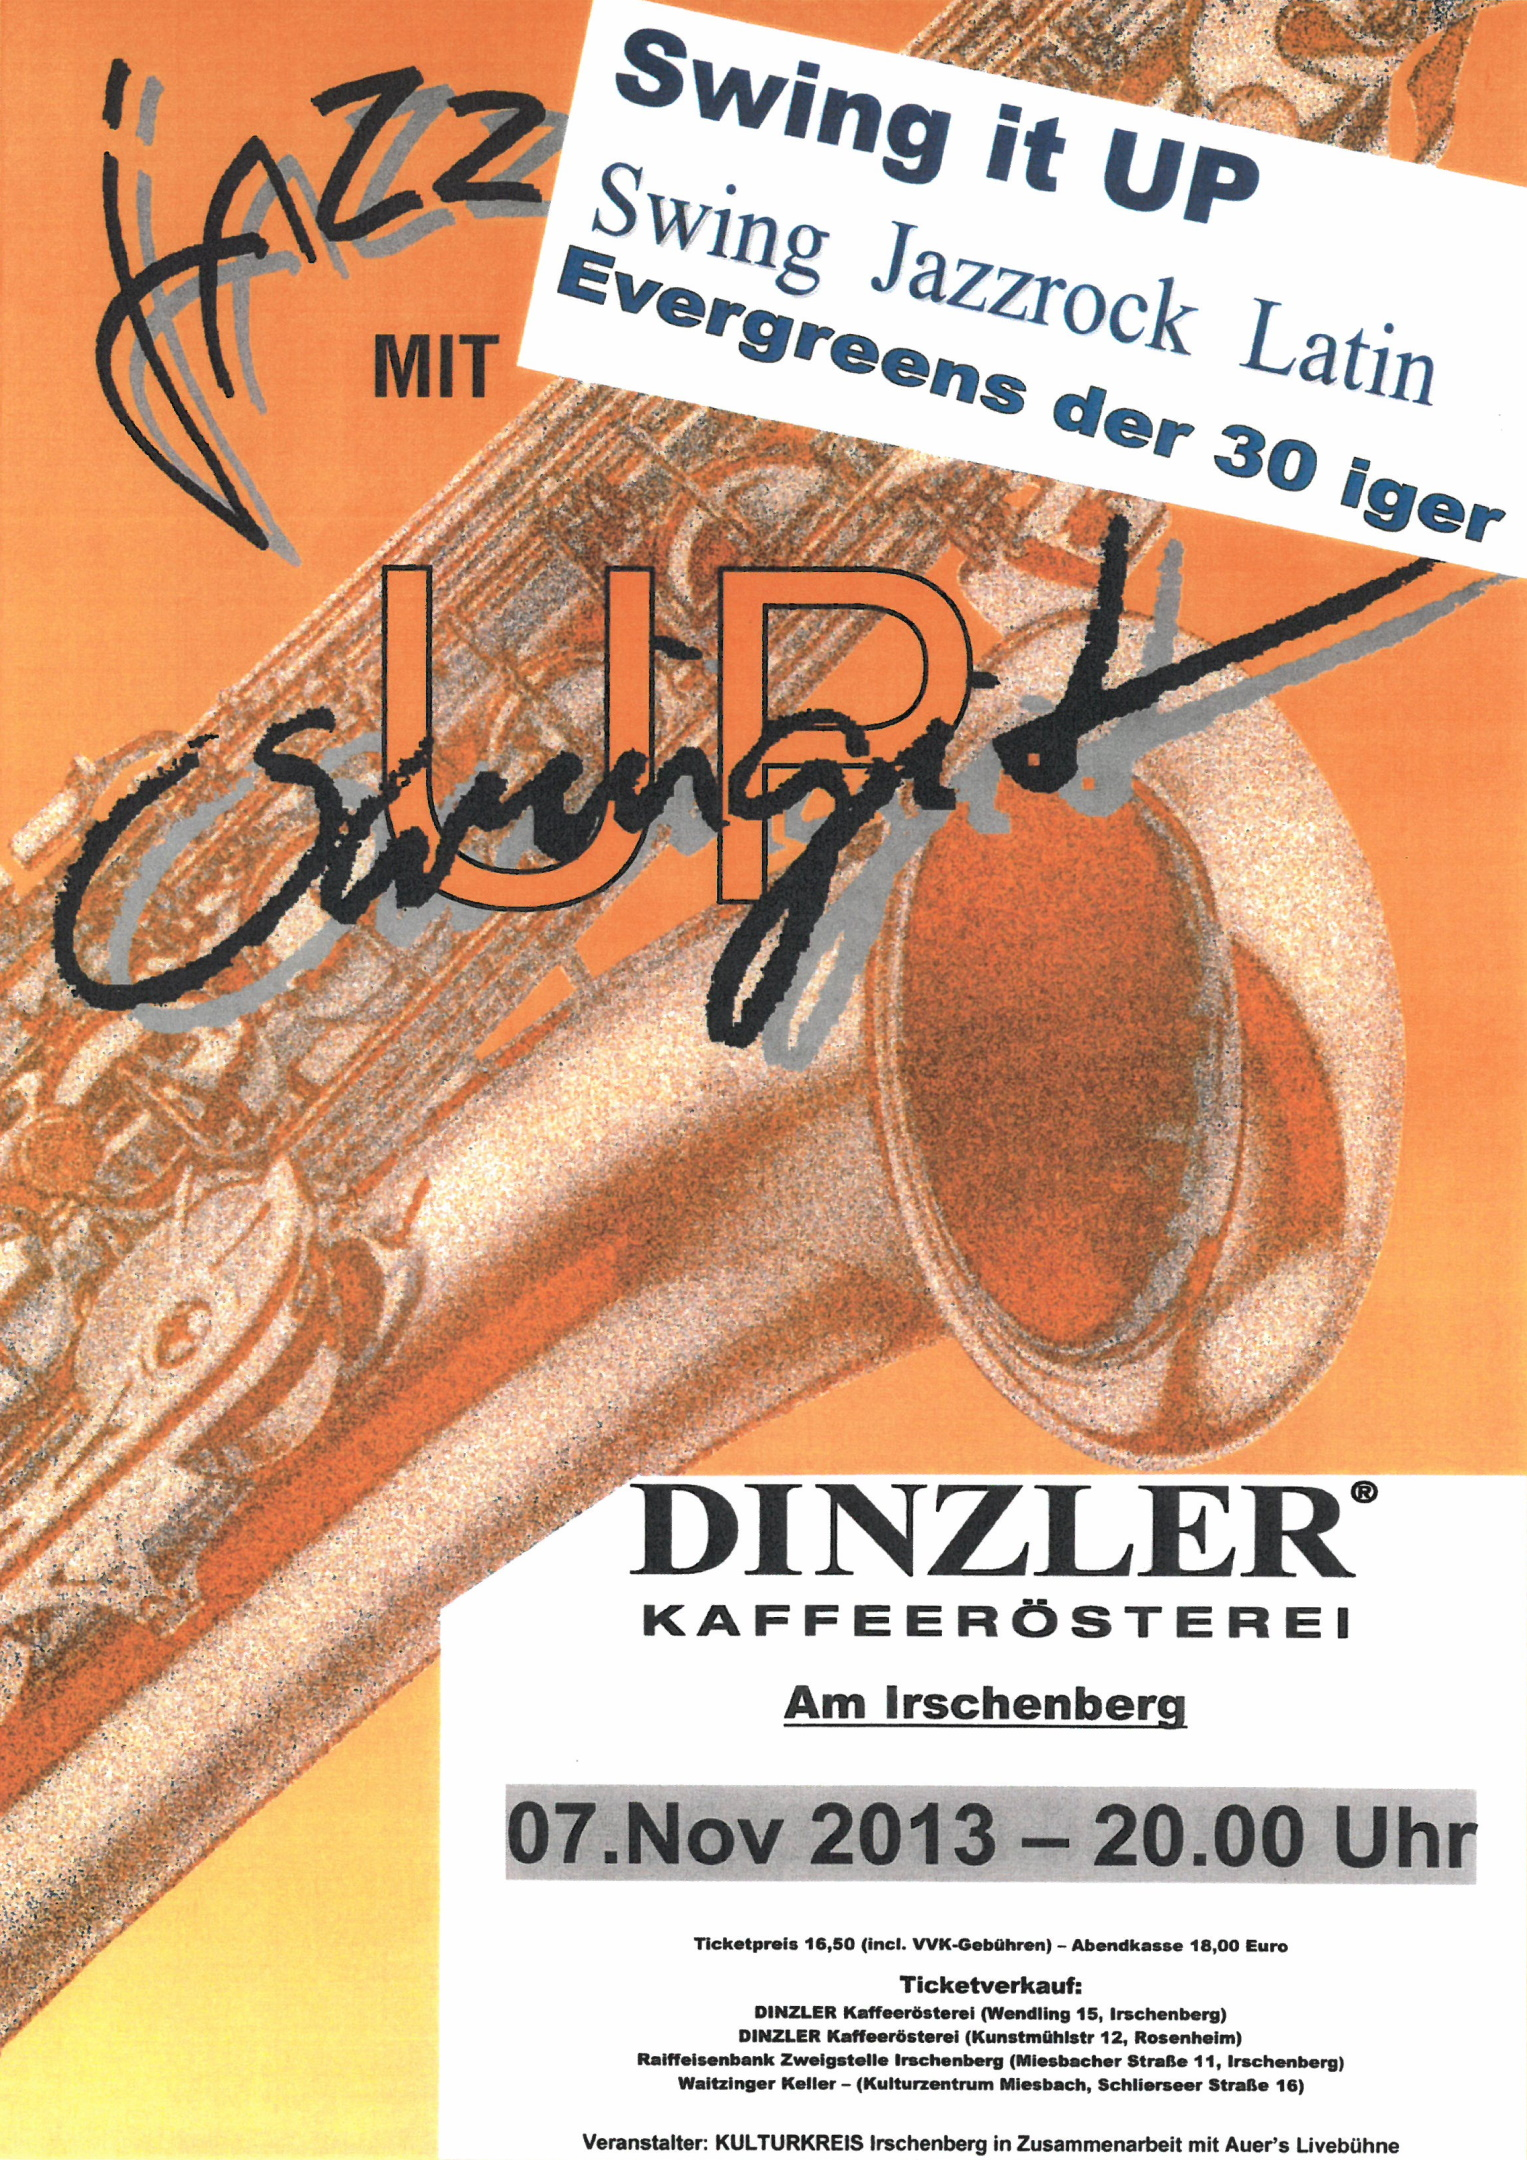 Jazzkonzert von Swing it UP im Dinzler